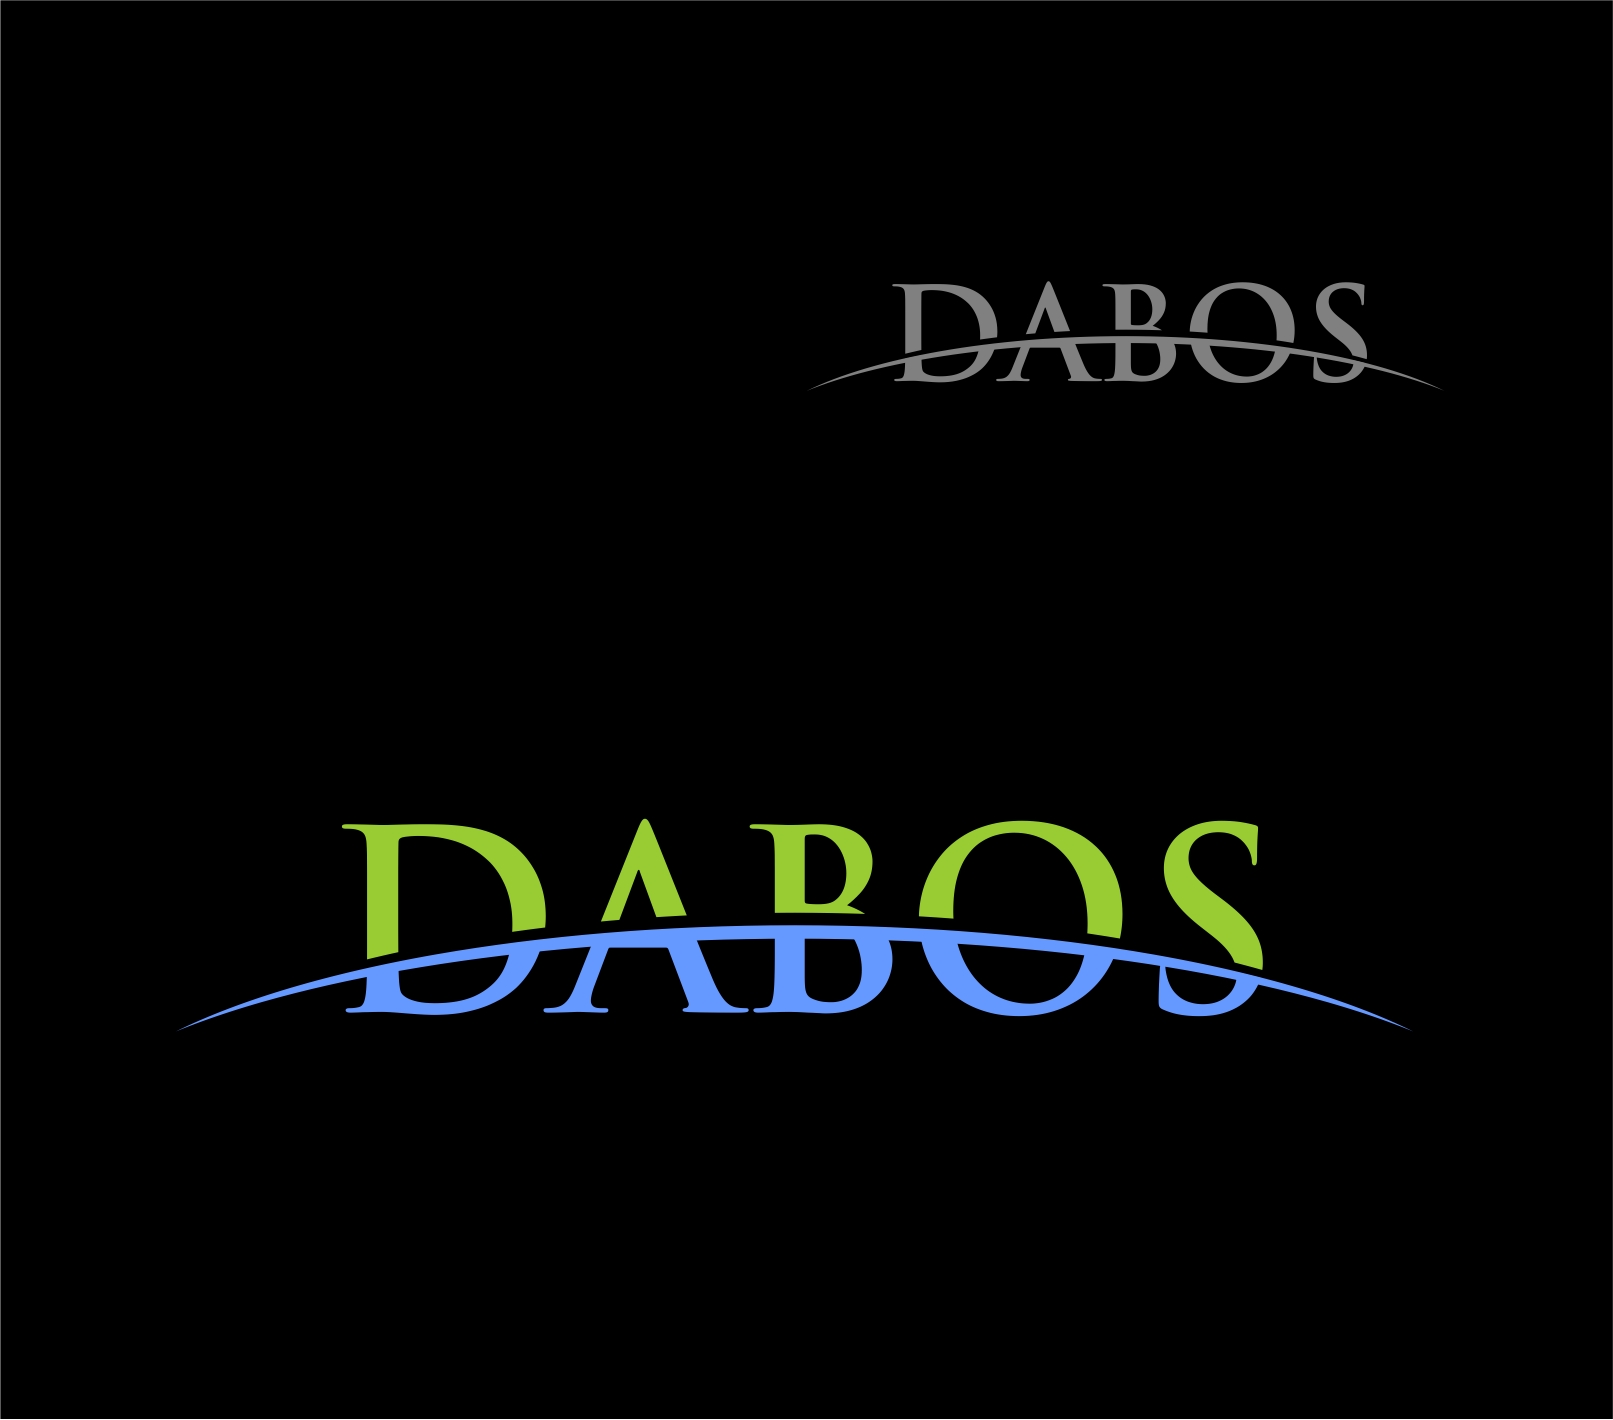 Logo Design by Reivan Ferdinan - Entry No. 73 in the Logo Design Contest Imaginative Logo Design for DABOS, Limited Liability Company.